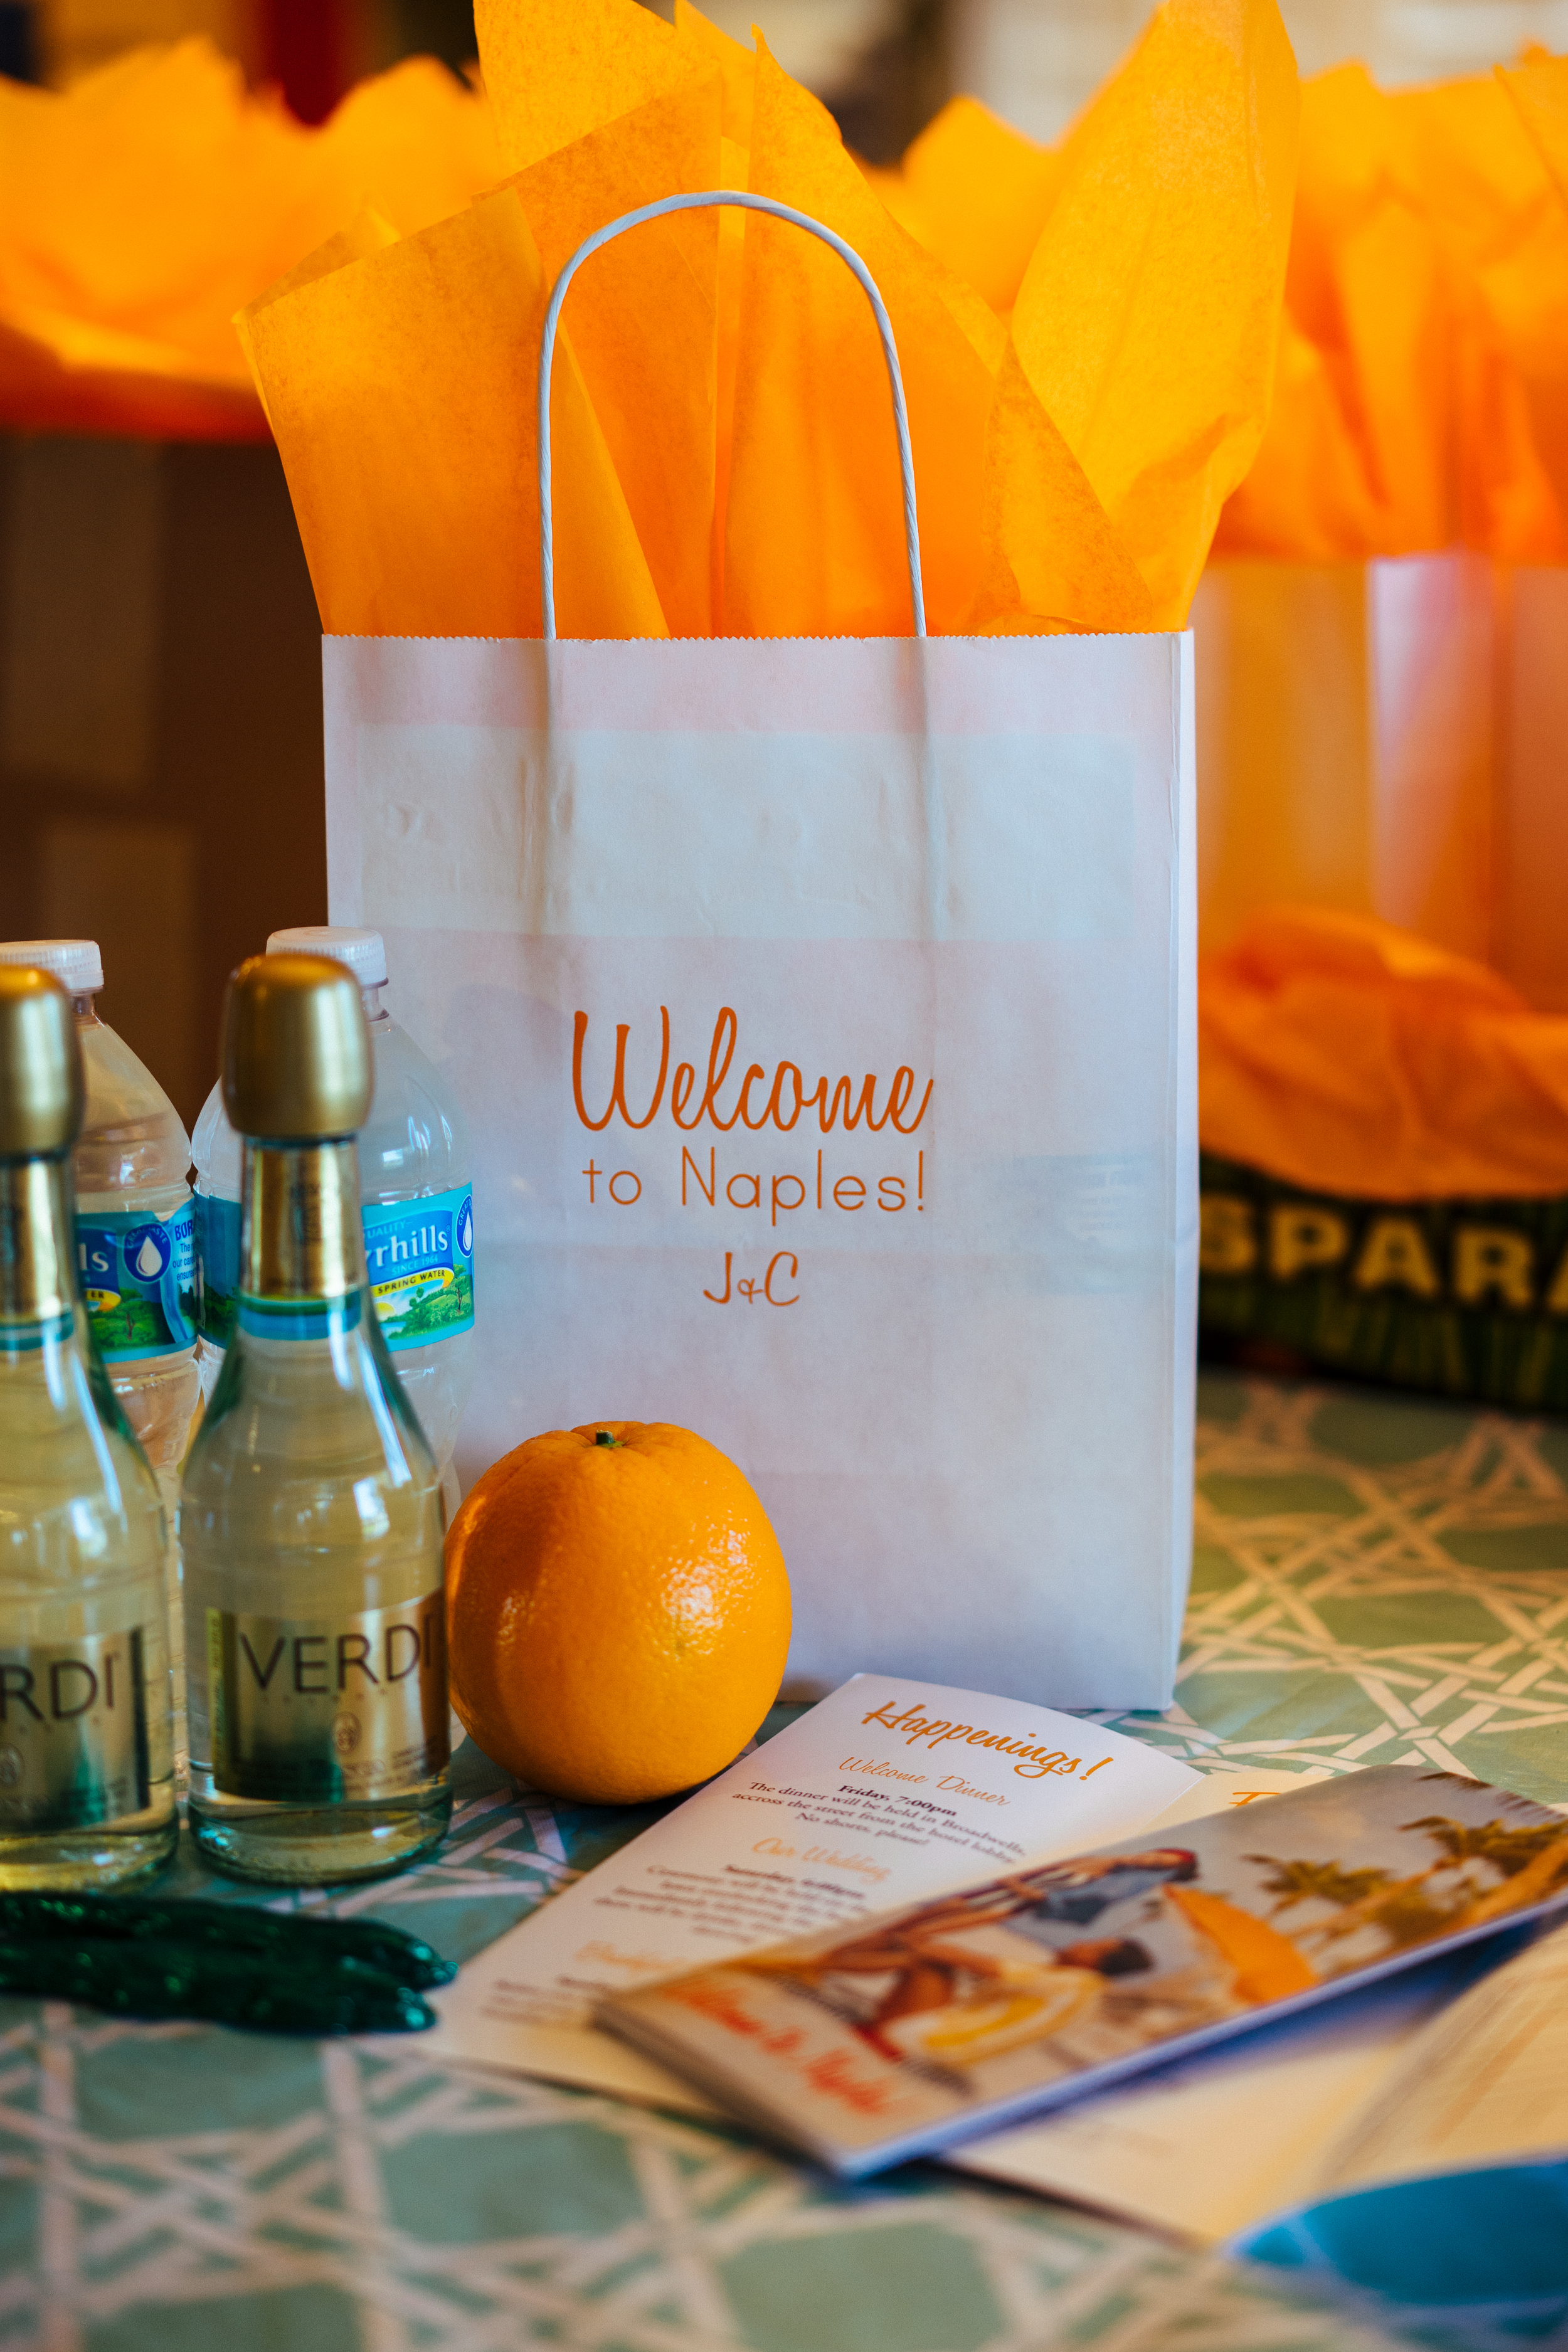 A glimpse at our welcome bags. We wanted these to be very Floridian (and scream vacation), so we included oranges, little chocolate alligators, and an itinerary for the wedding which we designed to look like a retro tourism pamphlet. ...oh and champagne, just 'cuz.